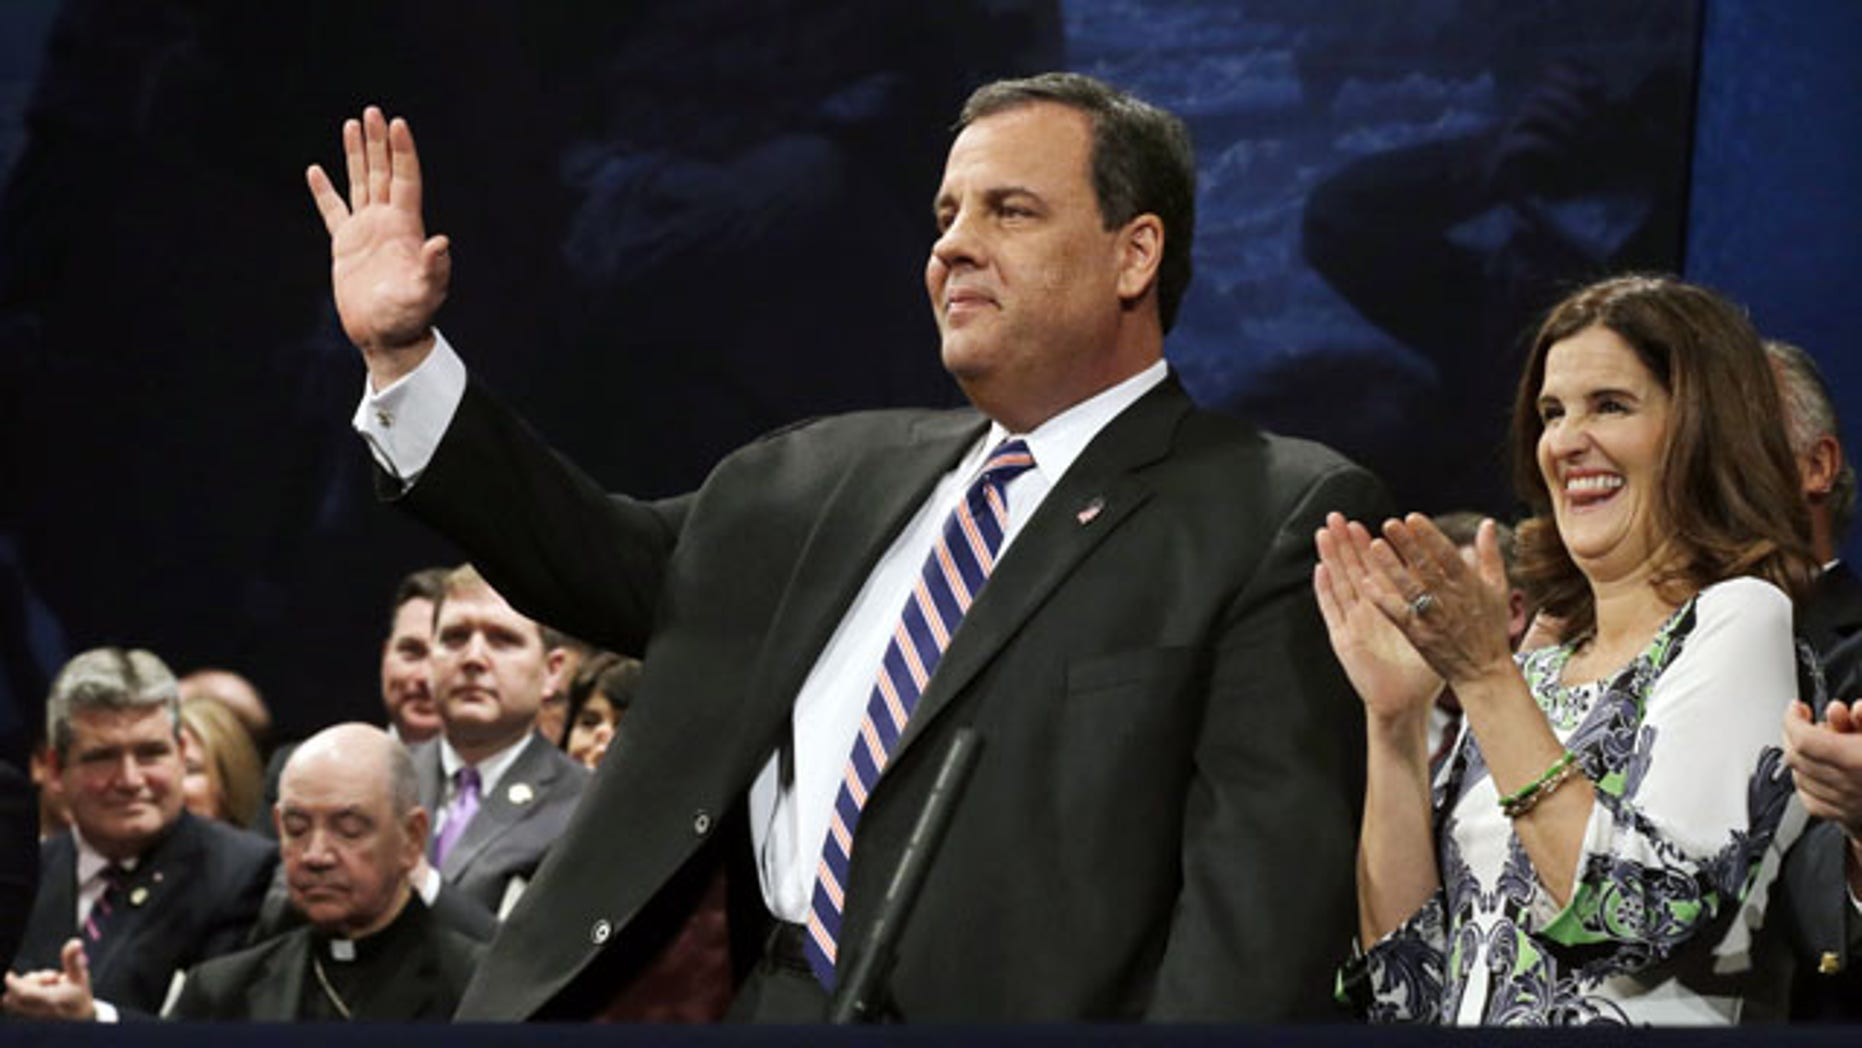 January 21, 2014: New Jersey Gov. Chris Christie waves as he stands with his wife Mary Pat Christie during a gathering for his swearing in for his second term in Trenton, N.J. (AP Photo)